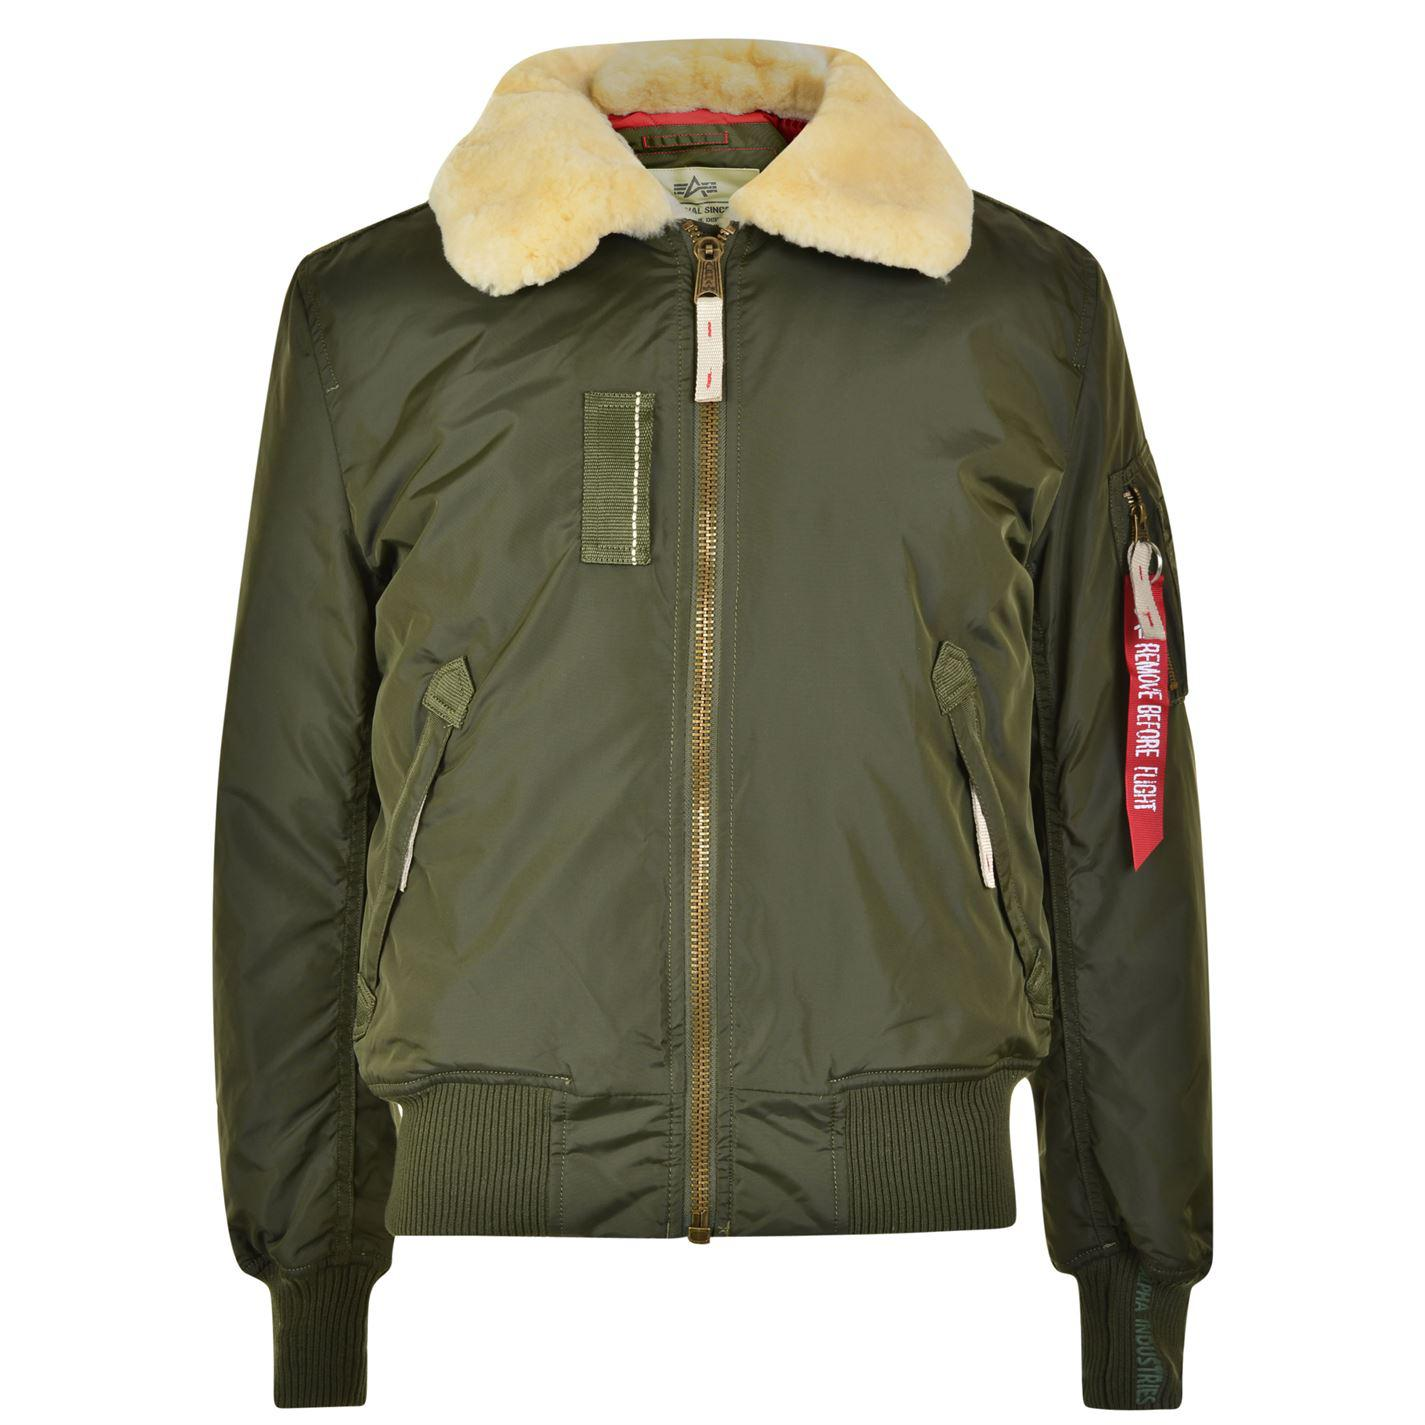 Alpha Industries Ma 1 Injector Iii Bomber Jacket in Green for Men - Lyst 5f3eb72d6d1f